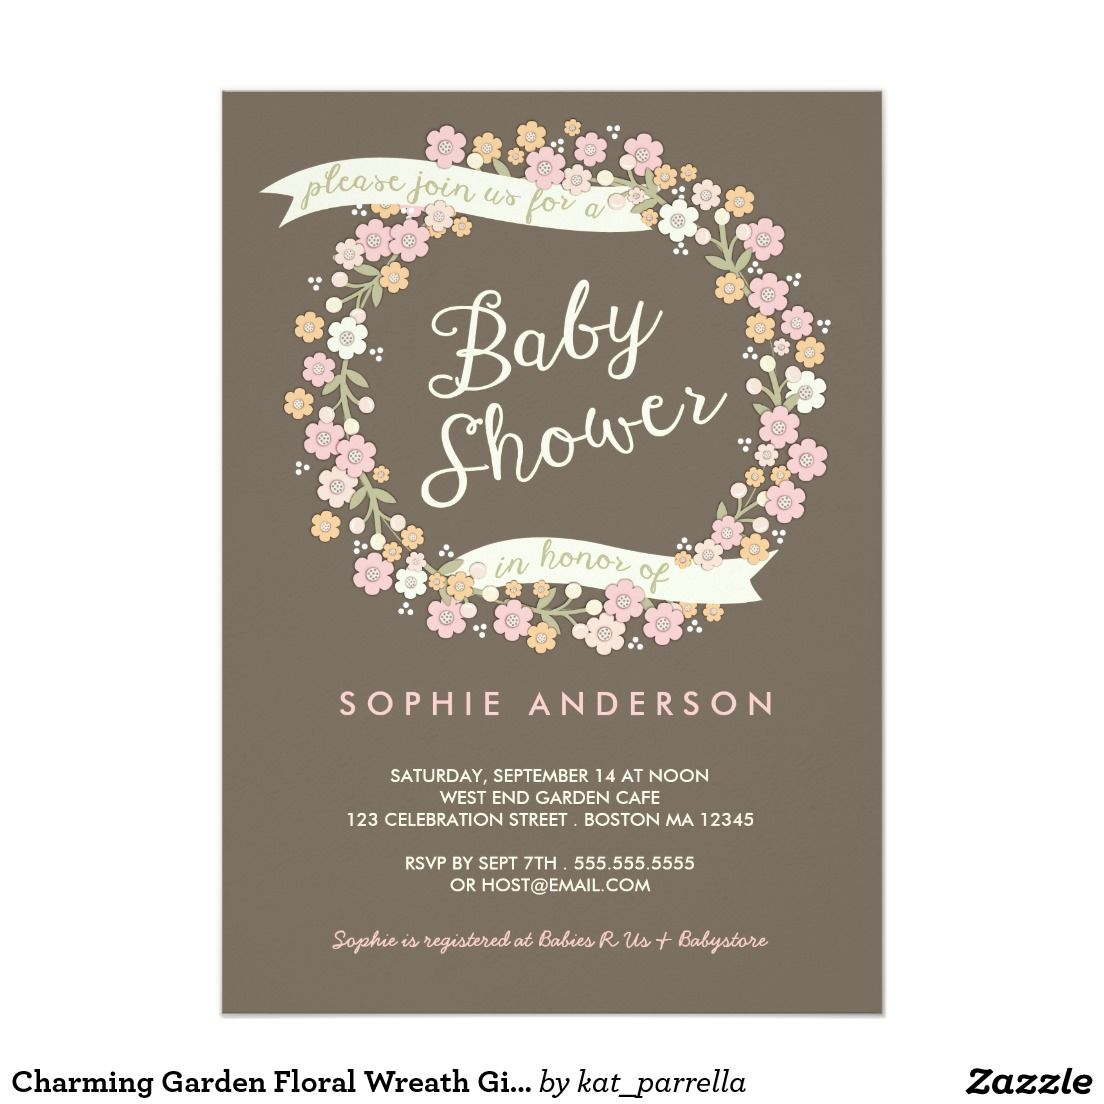 Charming garden floral wreath girl baby shower 5x7 paper invitation charming garden floral wreath girl baby shower 5x7 paper invitation card stopboris Choice Image